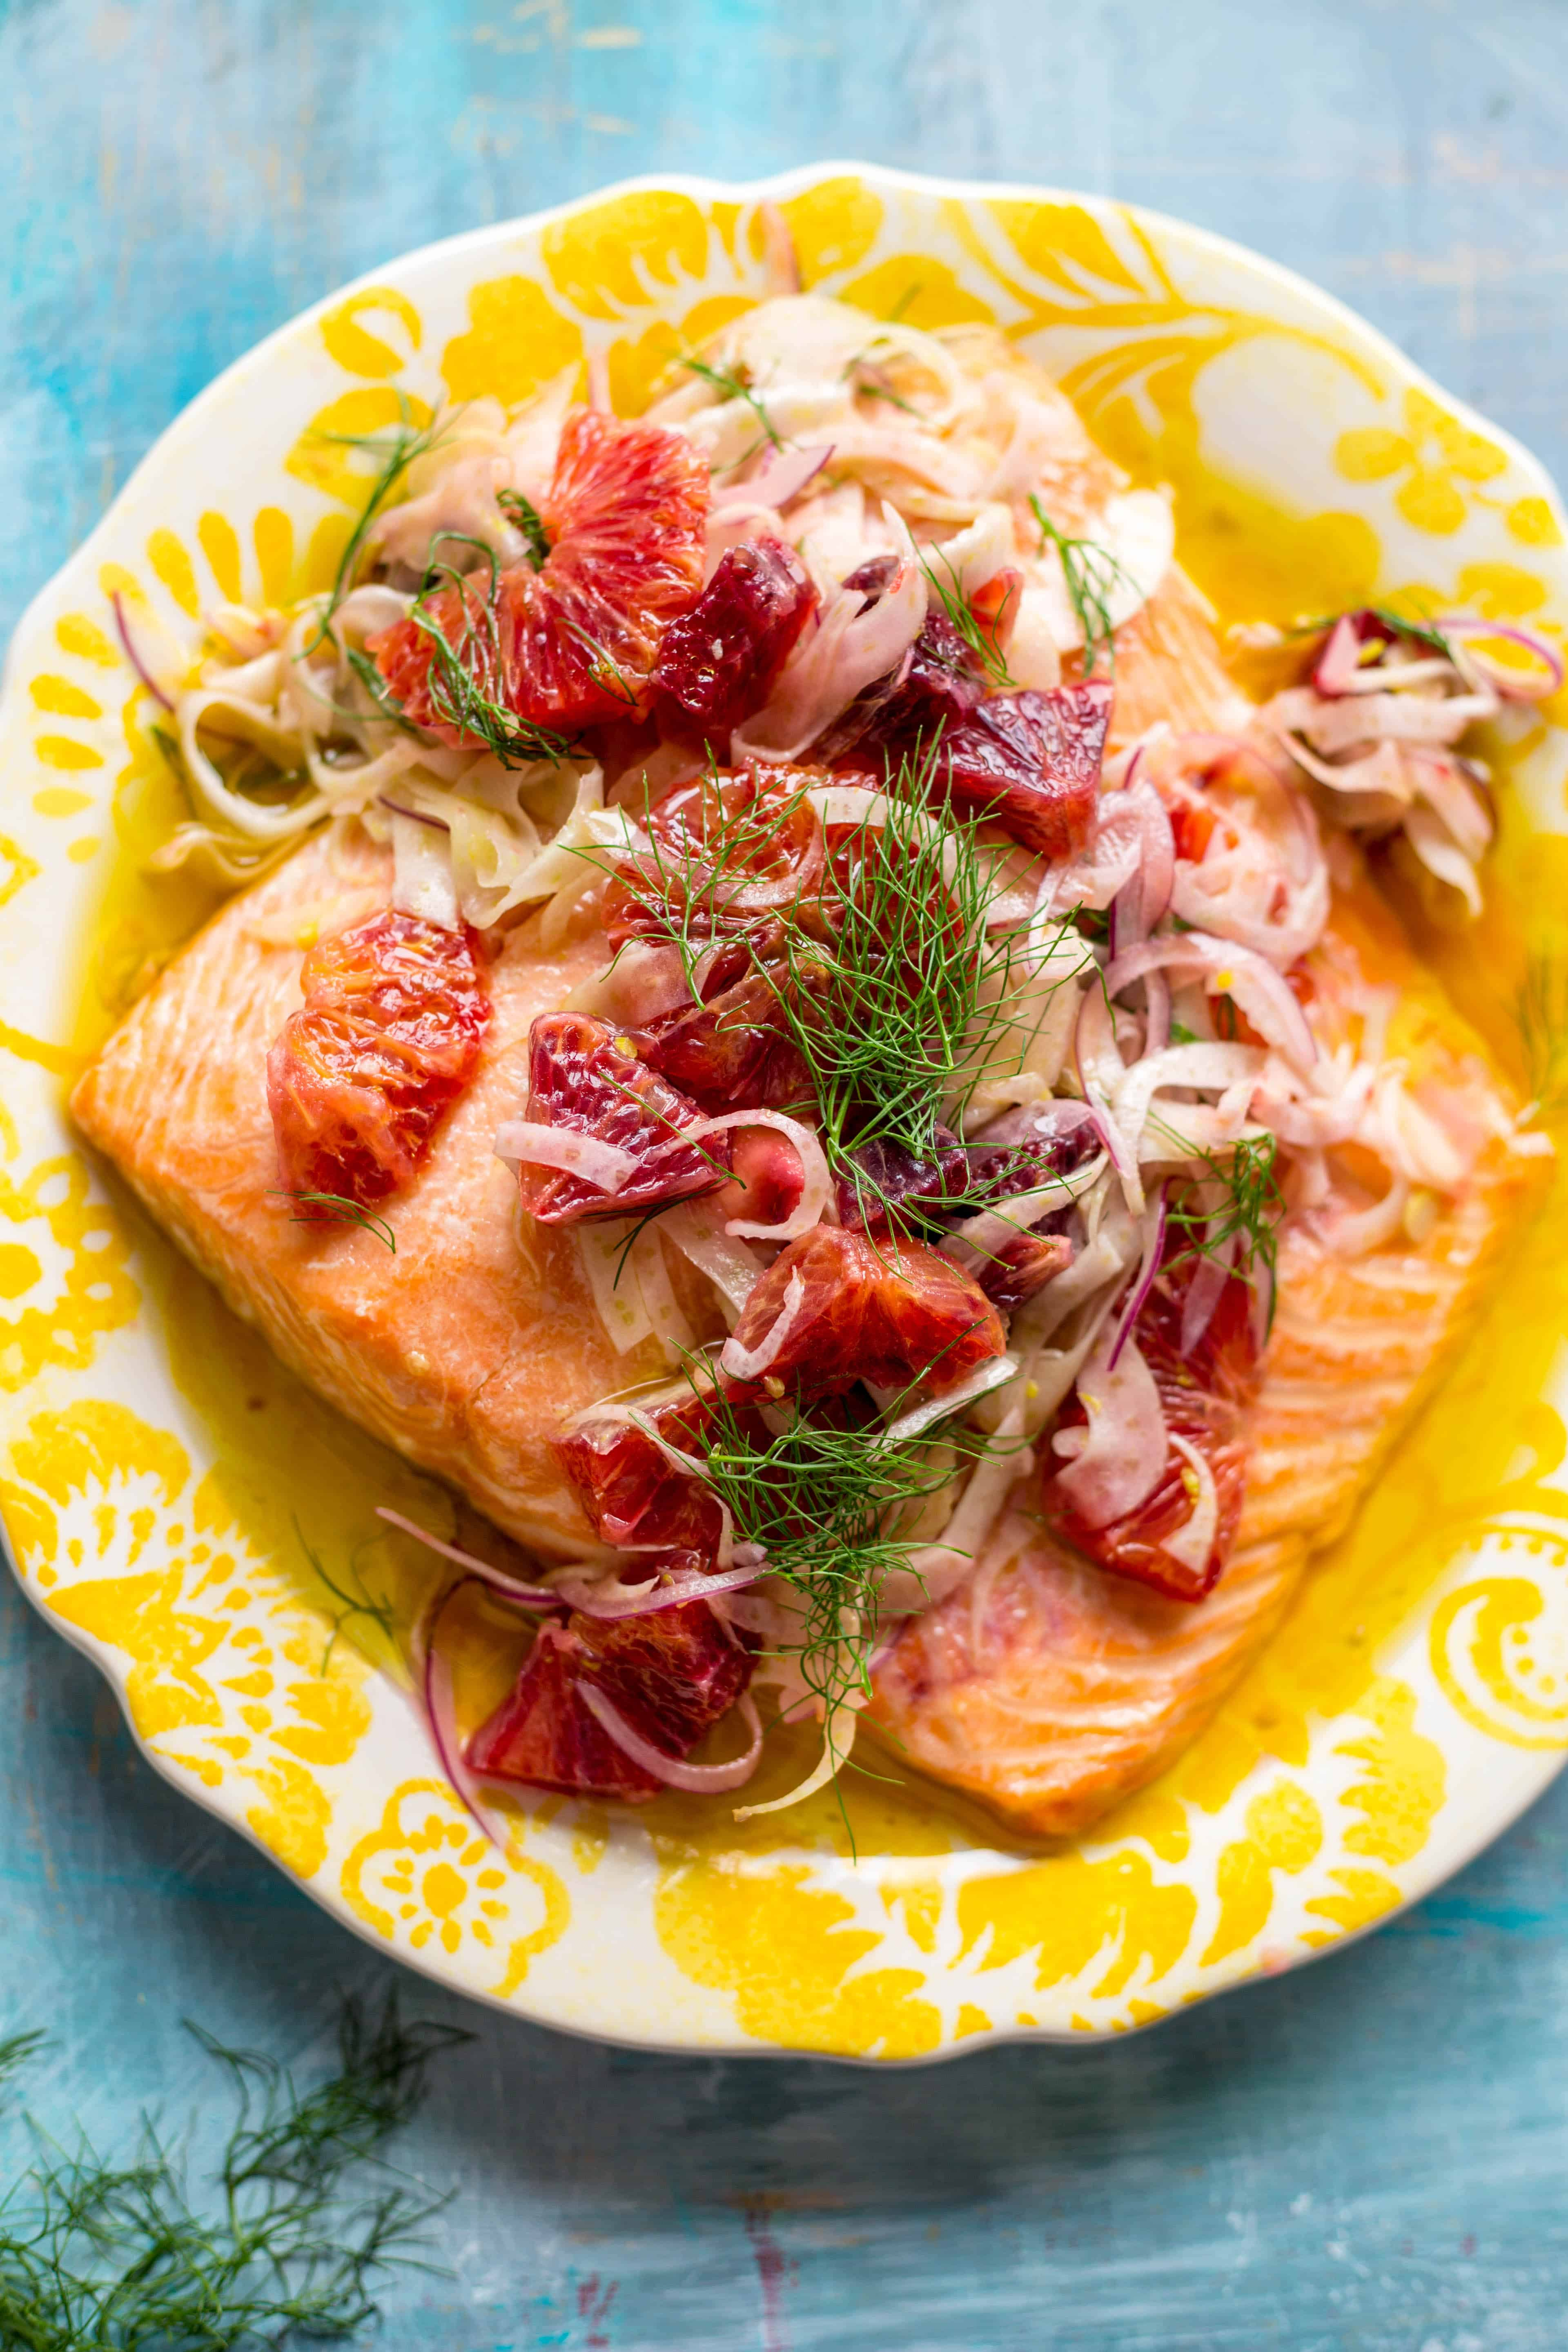 Top view of a yellow plate with a salmon fillet covered in fresh herbs and sliced citrus.